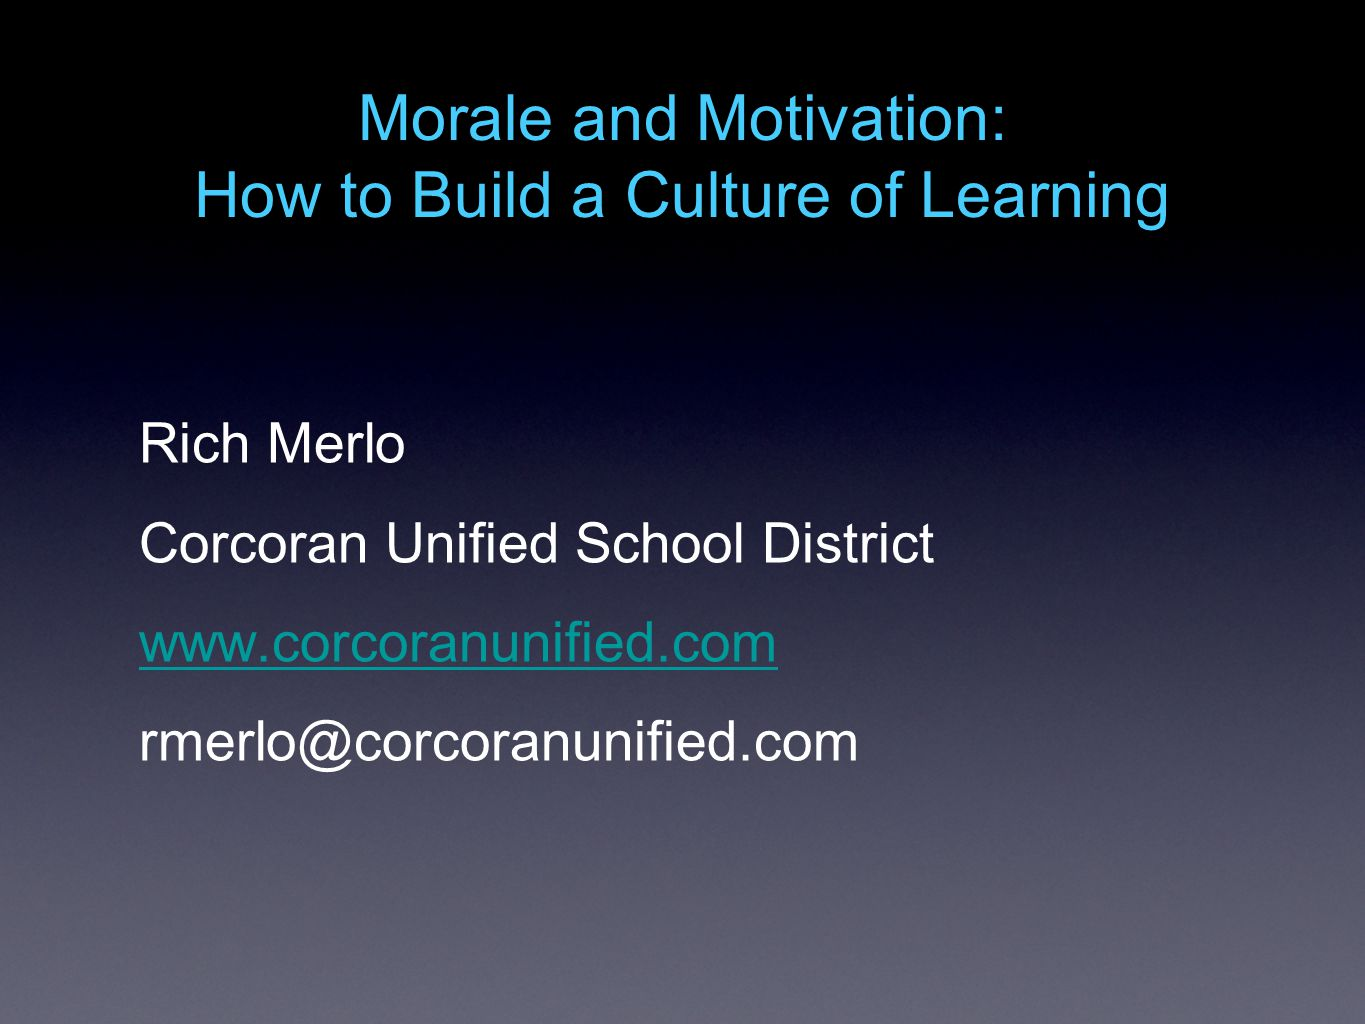 Morale and Motivation: How to Build a Culture of Learning Rich Merlo Corcoran Unified School District www.corcoranunified.com rmerlo@corcoranunified.com